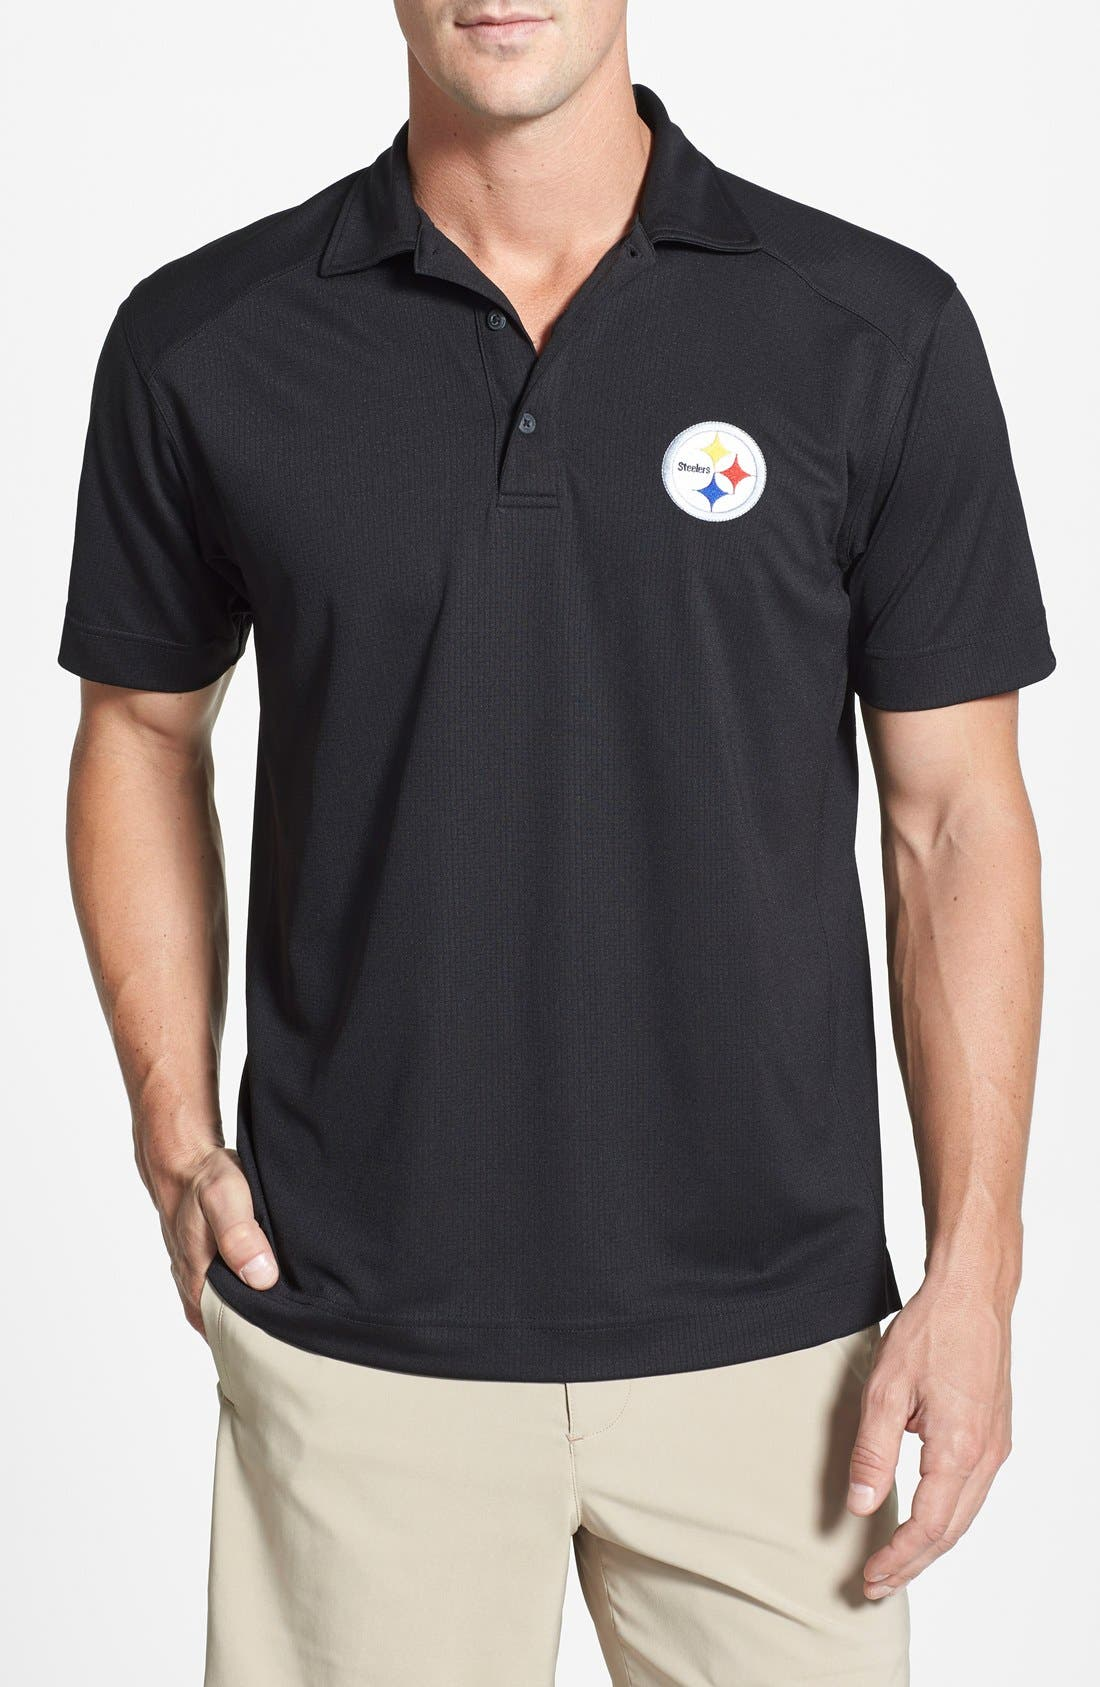 Pittsburgh Steelers - Genre DryTec Moisture Wicking Polo,                         Main,                         color, Black